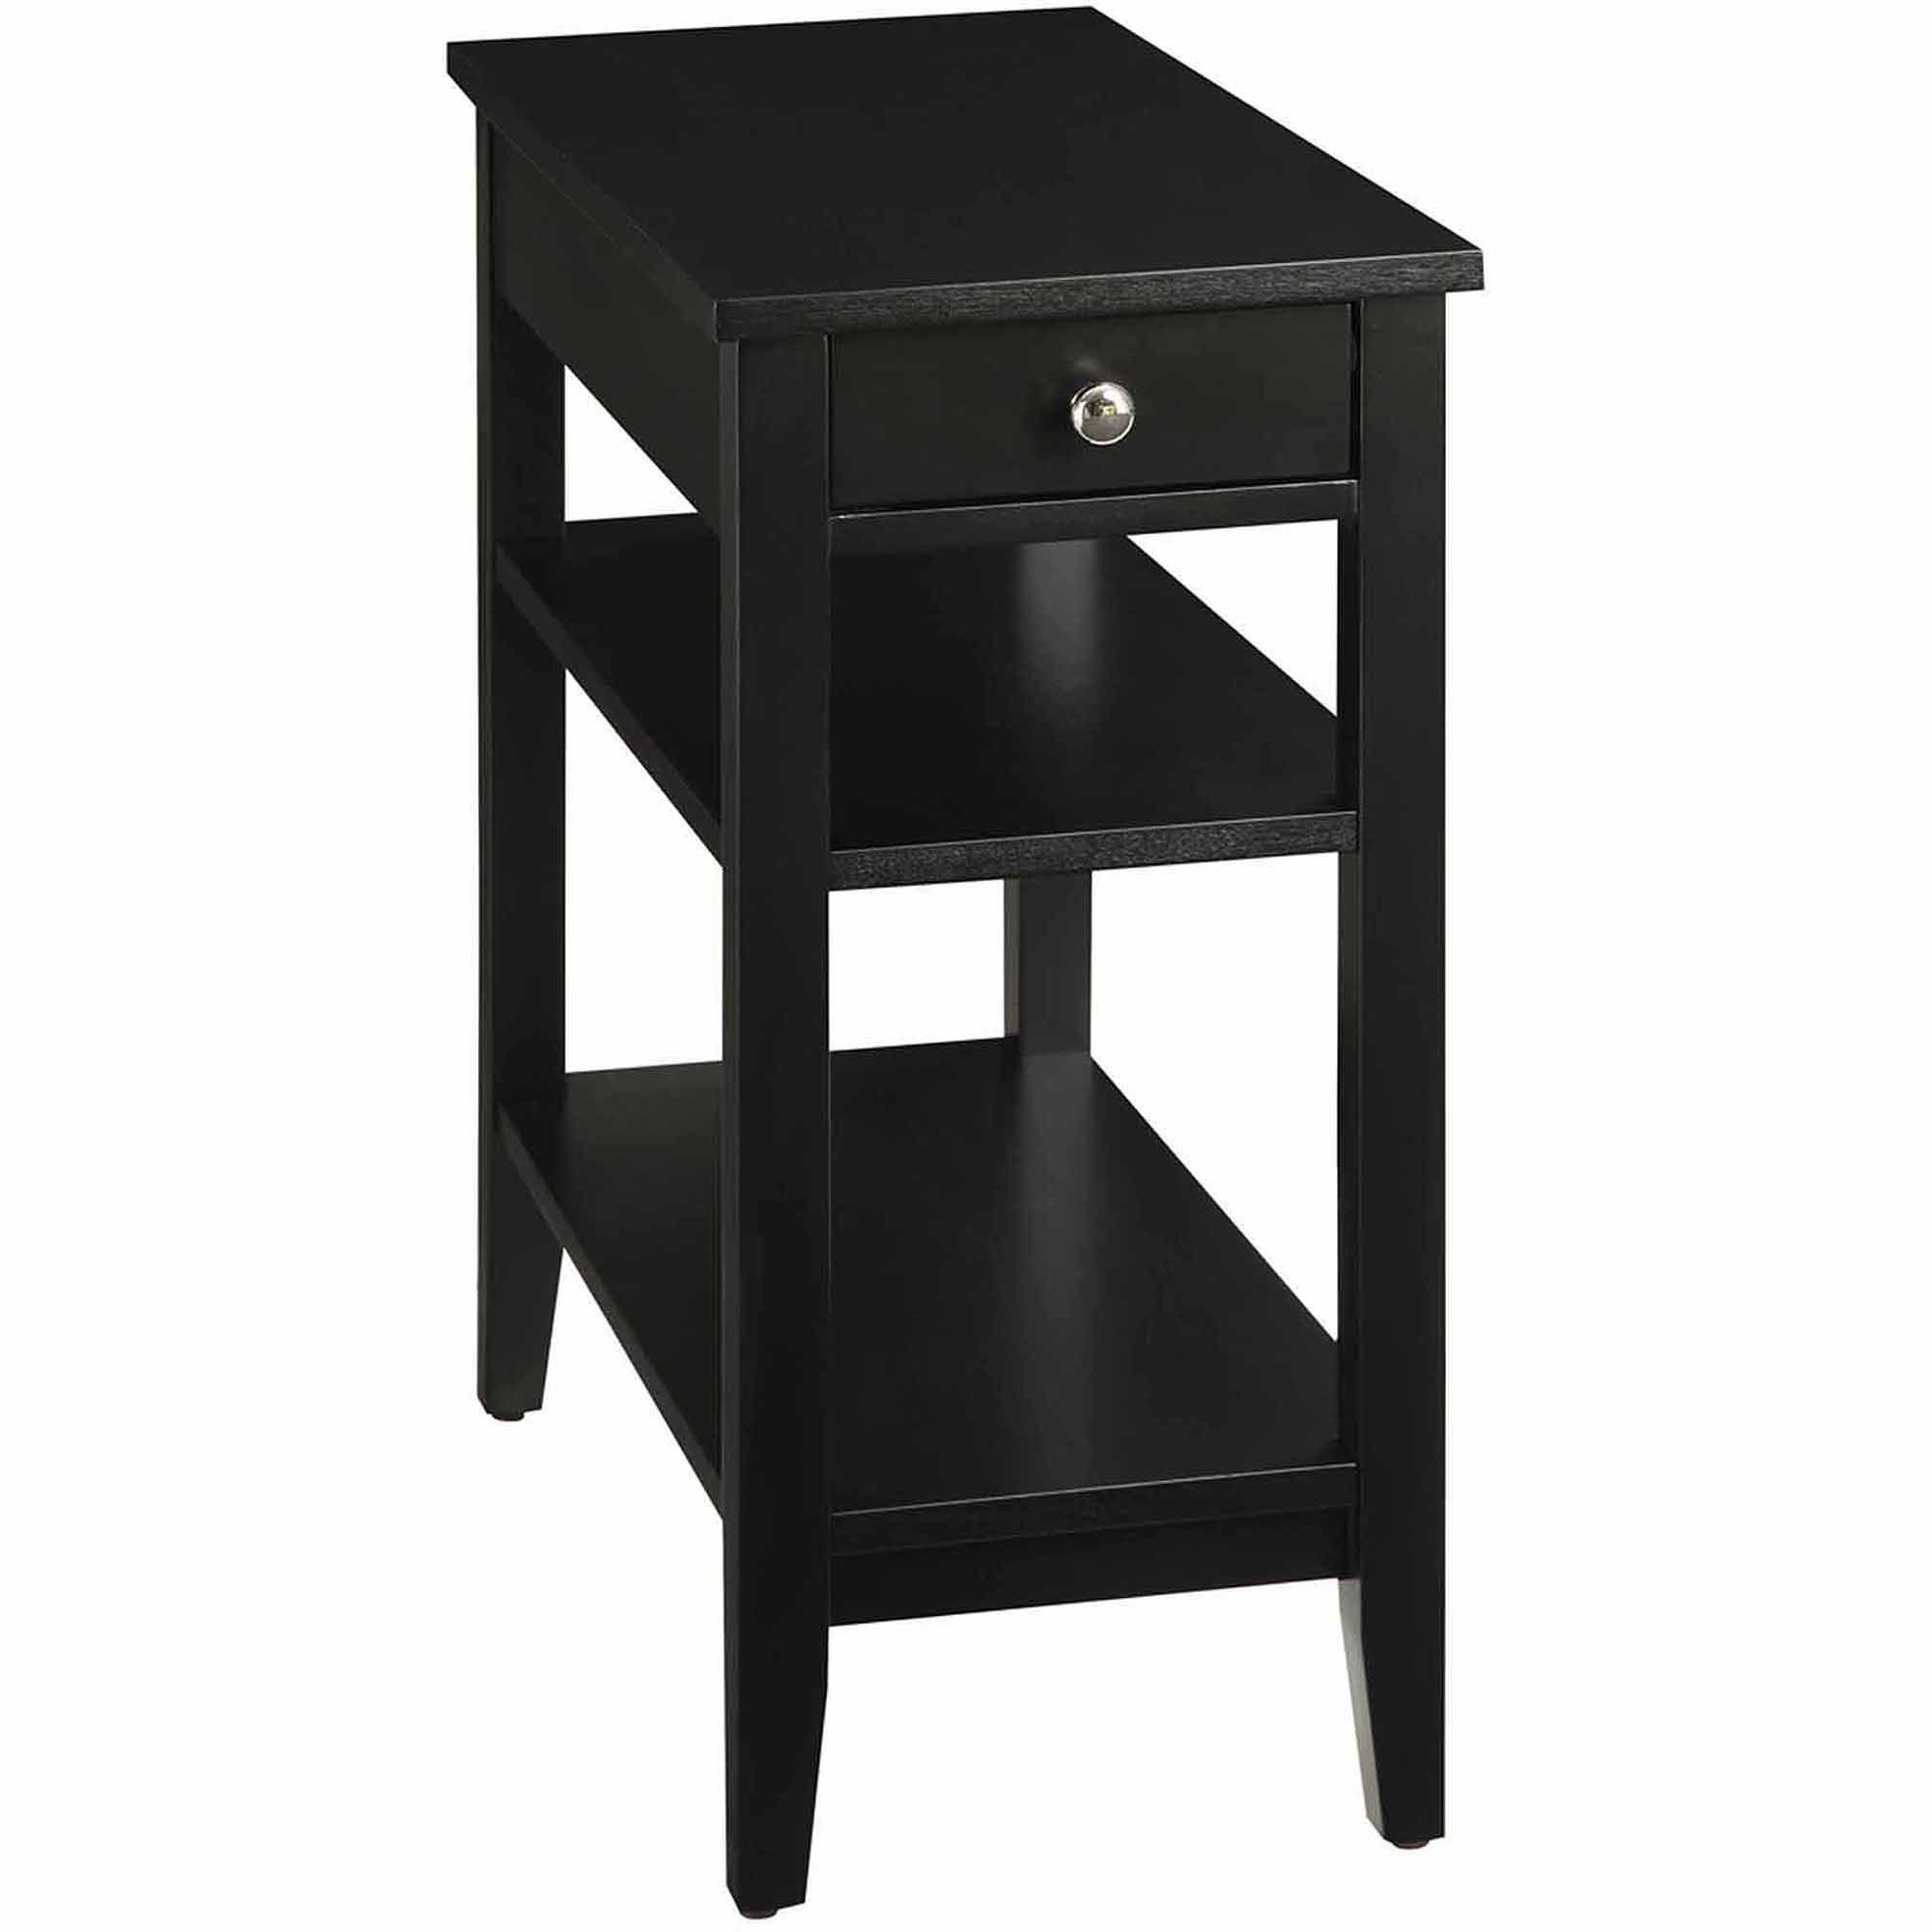 accent tables with drawers tall end table storage best elegant black wood tier drawer for your living room design inch high linens personalized dog beds diy bench legs mid century